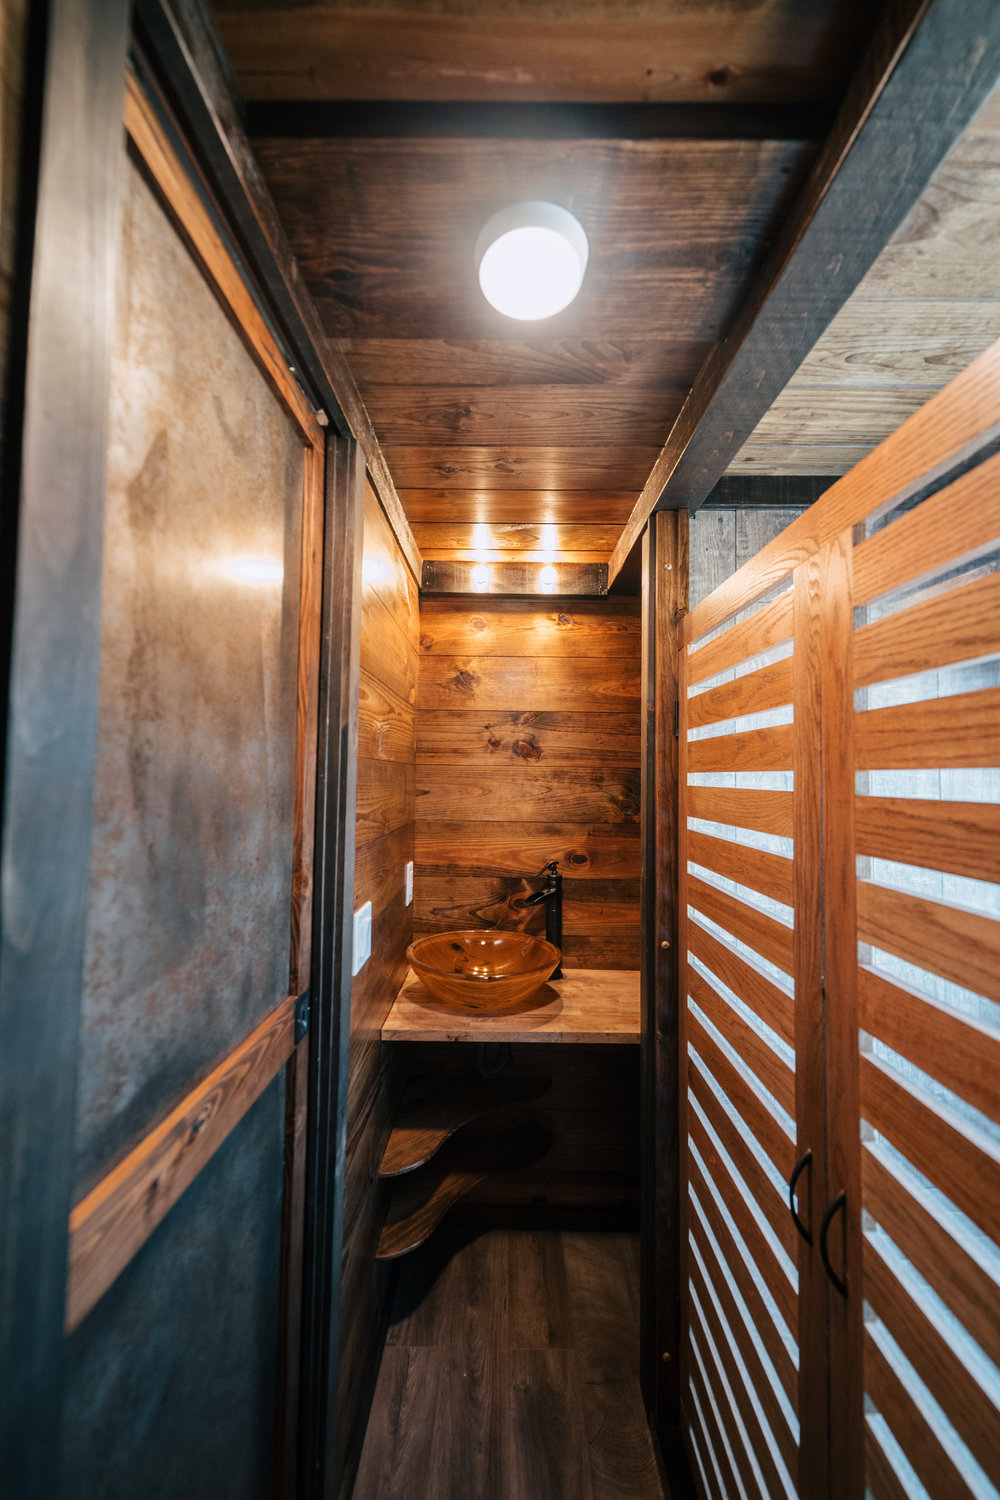 The Silhouette by Wind River Tiny Homes - patina steel pocket door, glass vessel sink, oak wood slat/Plexiglass shower stall doors